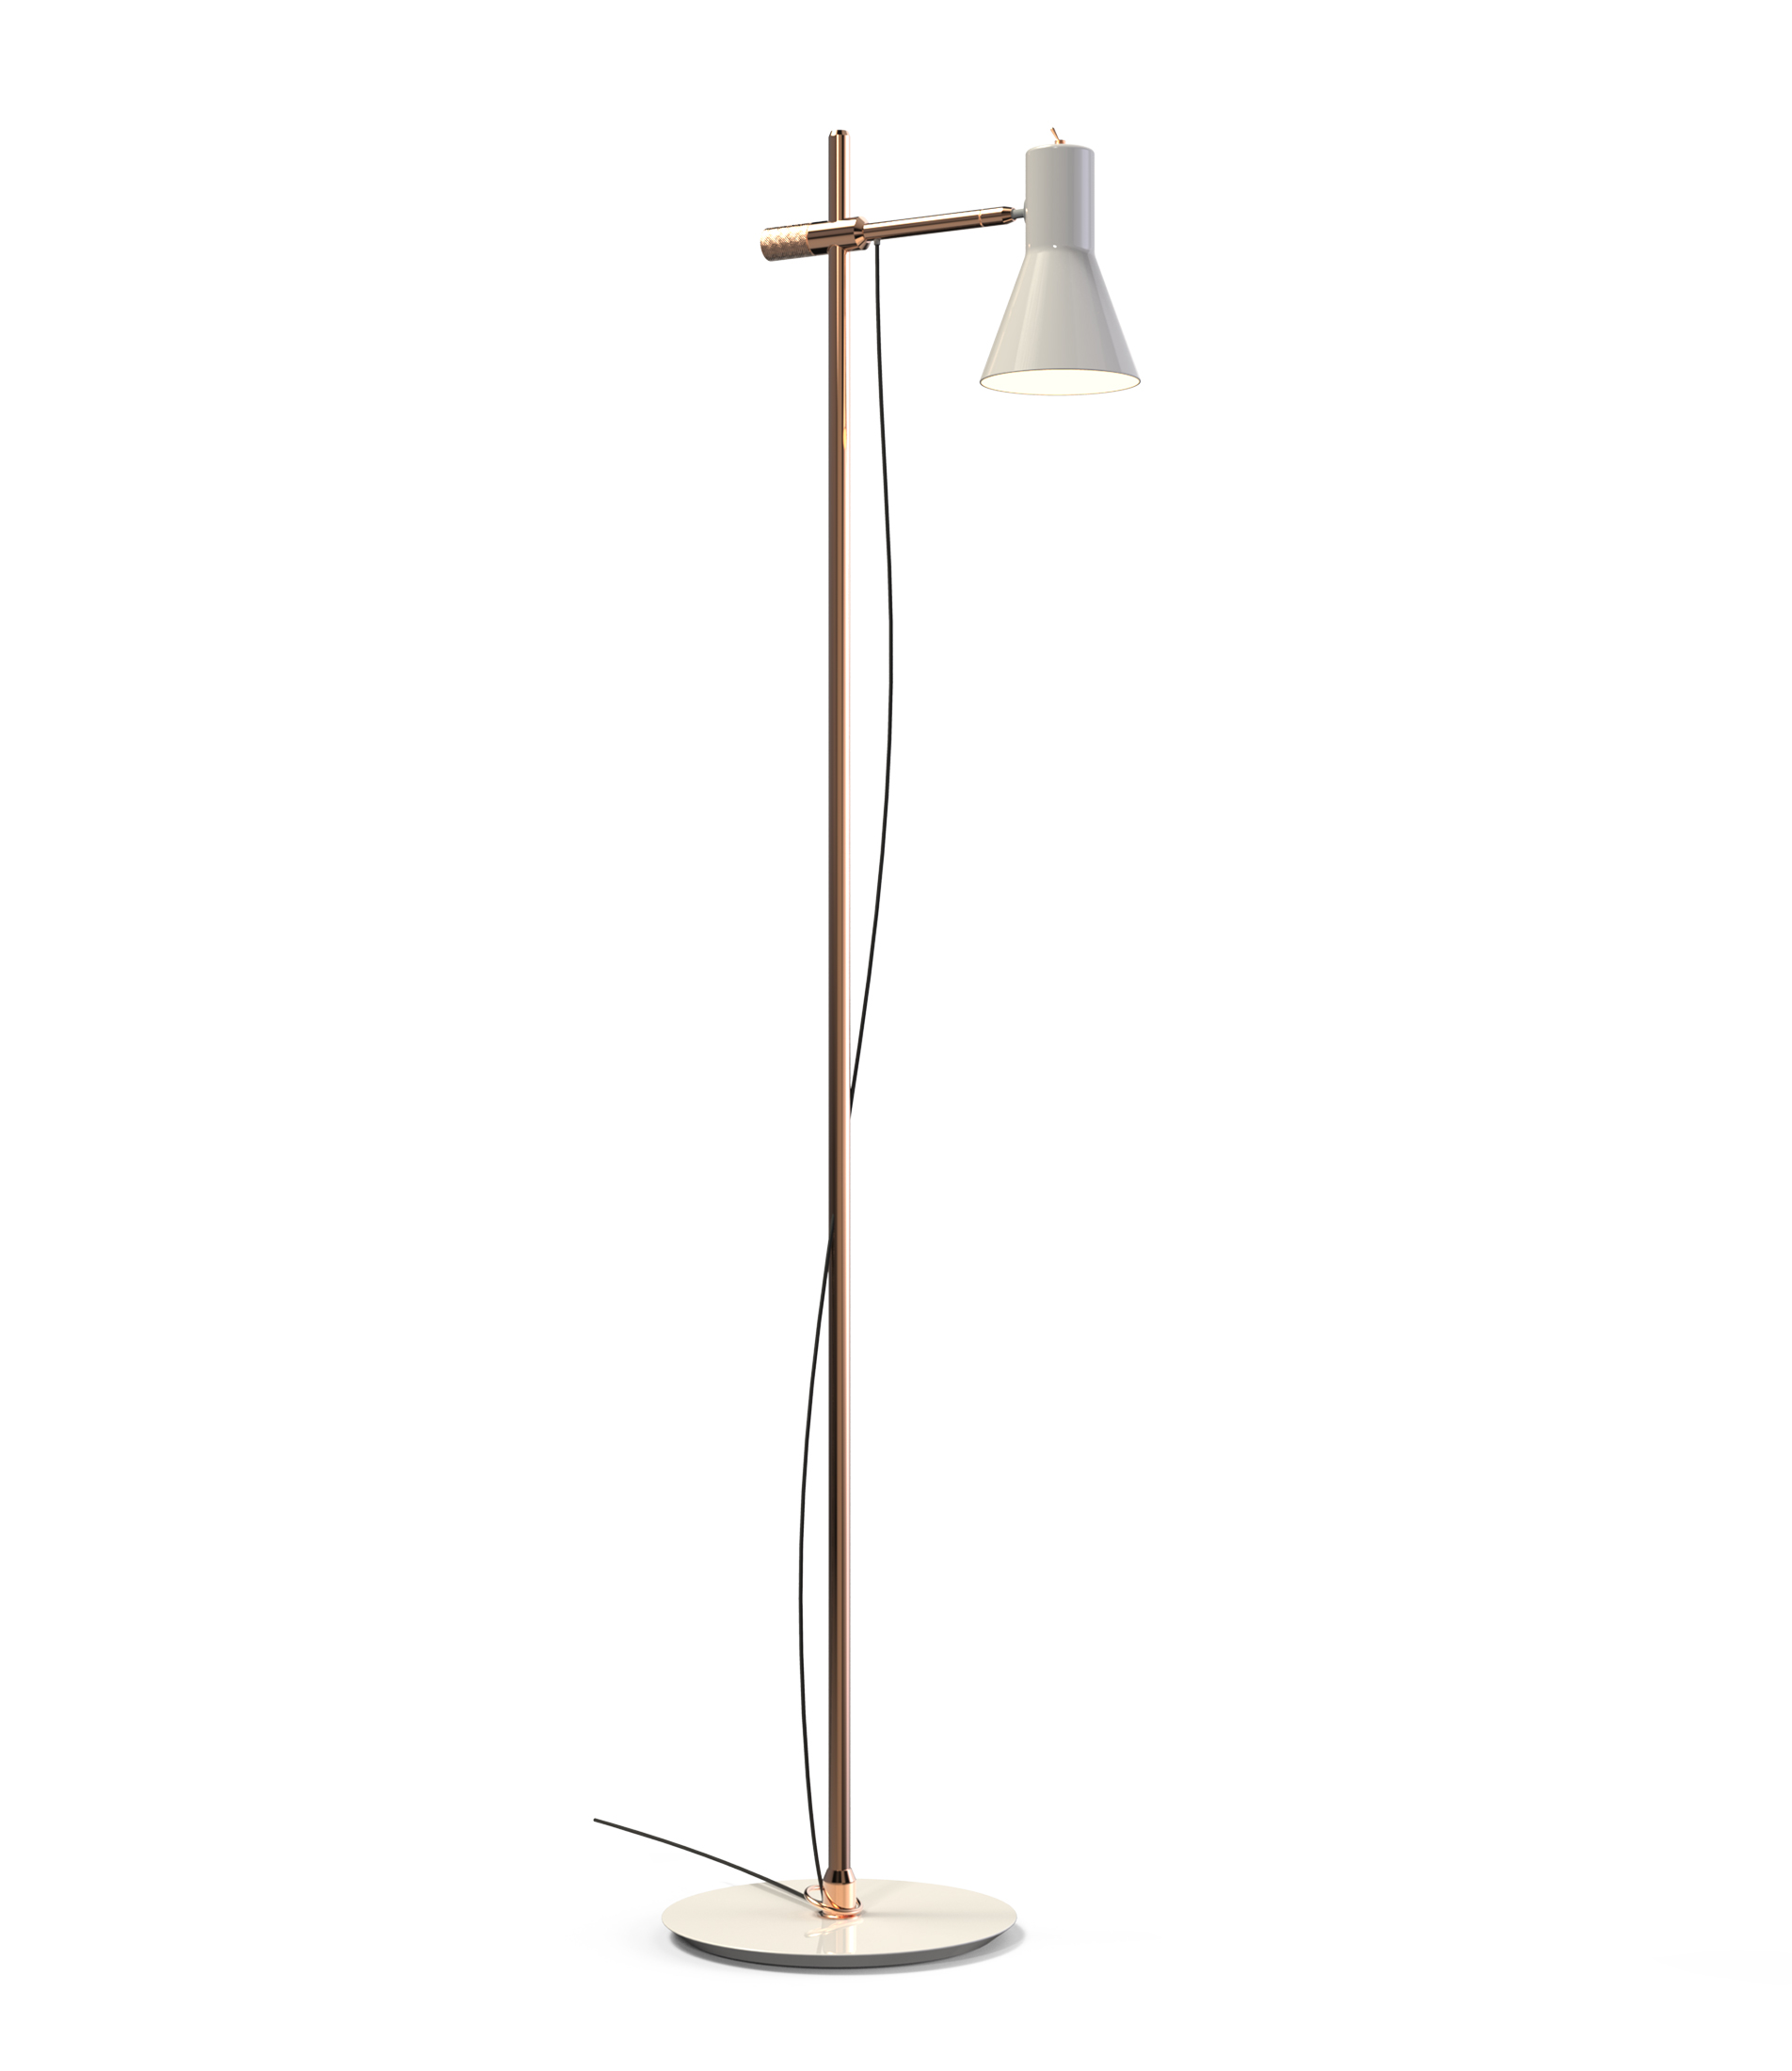 Why White Floor Lamps are The Best for Your Summer Decor 1 white floor lamps Why White Floor Lamps are The Best for Your Summer Decor Why White Floor Lamps are The Best for Your Summer Decor 3